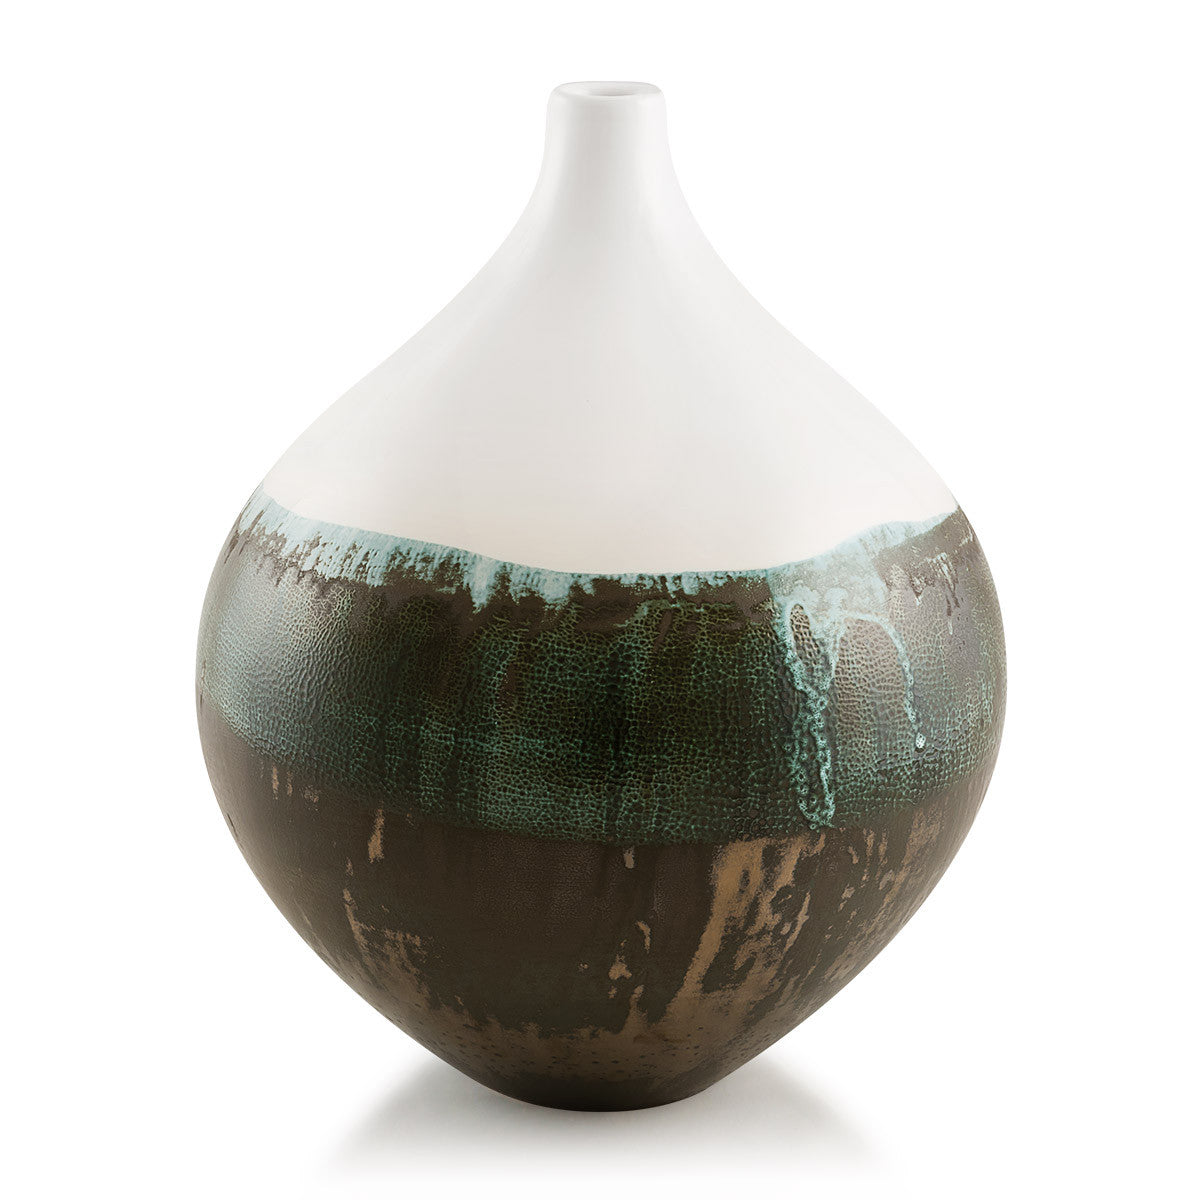 Teardrop vase reactive glaze | Pottery supplies